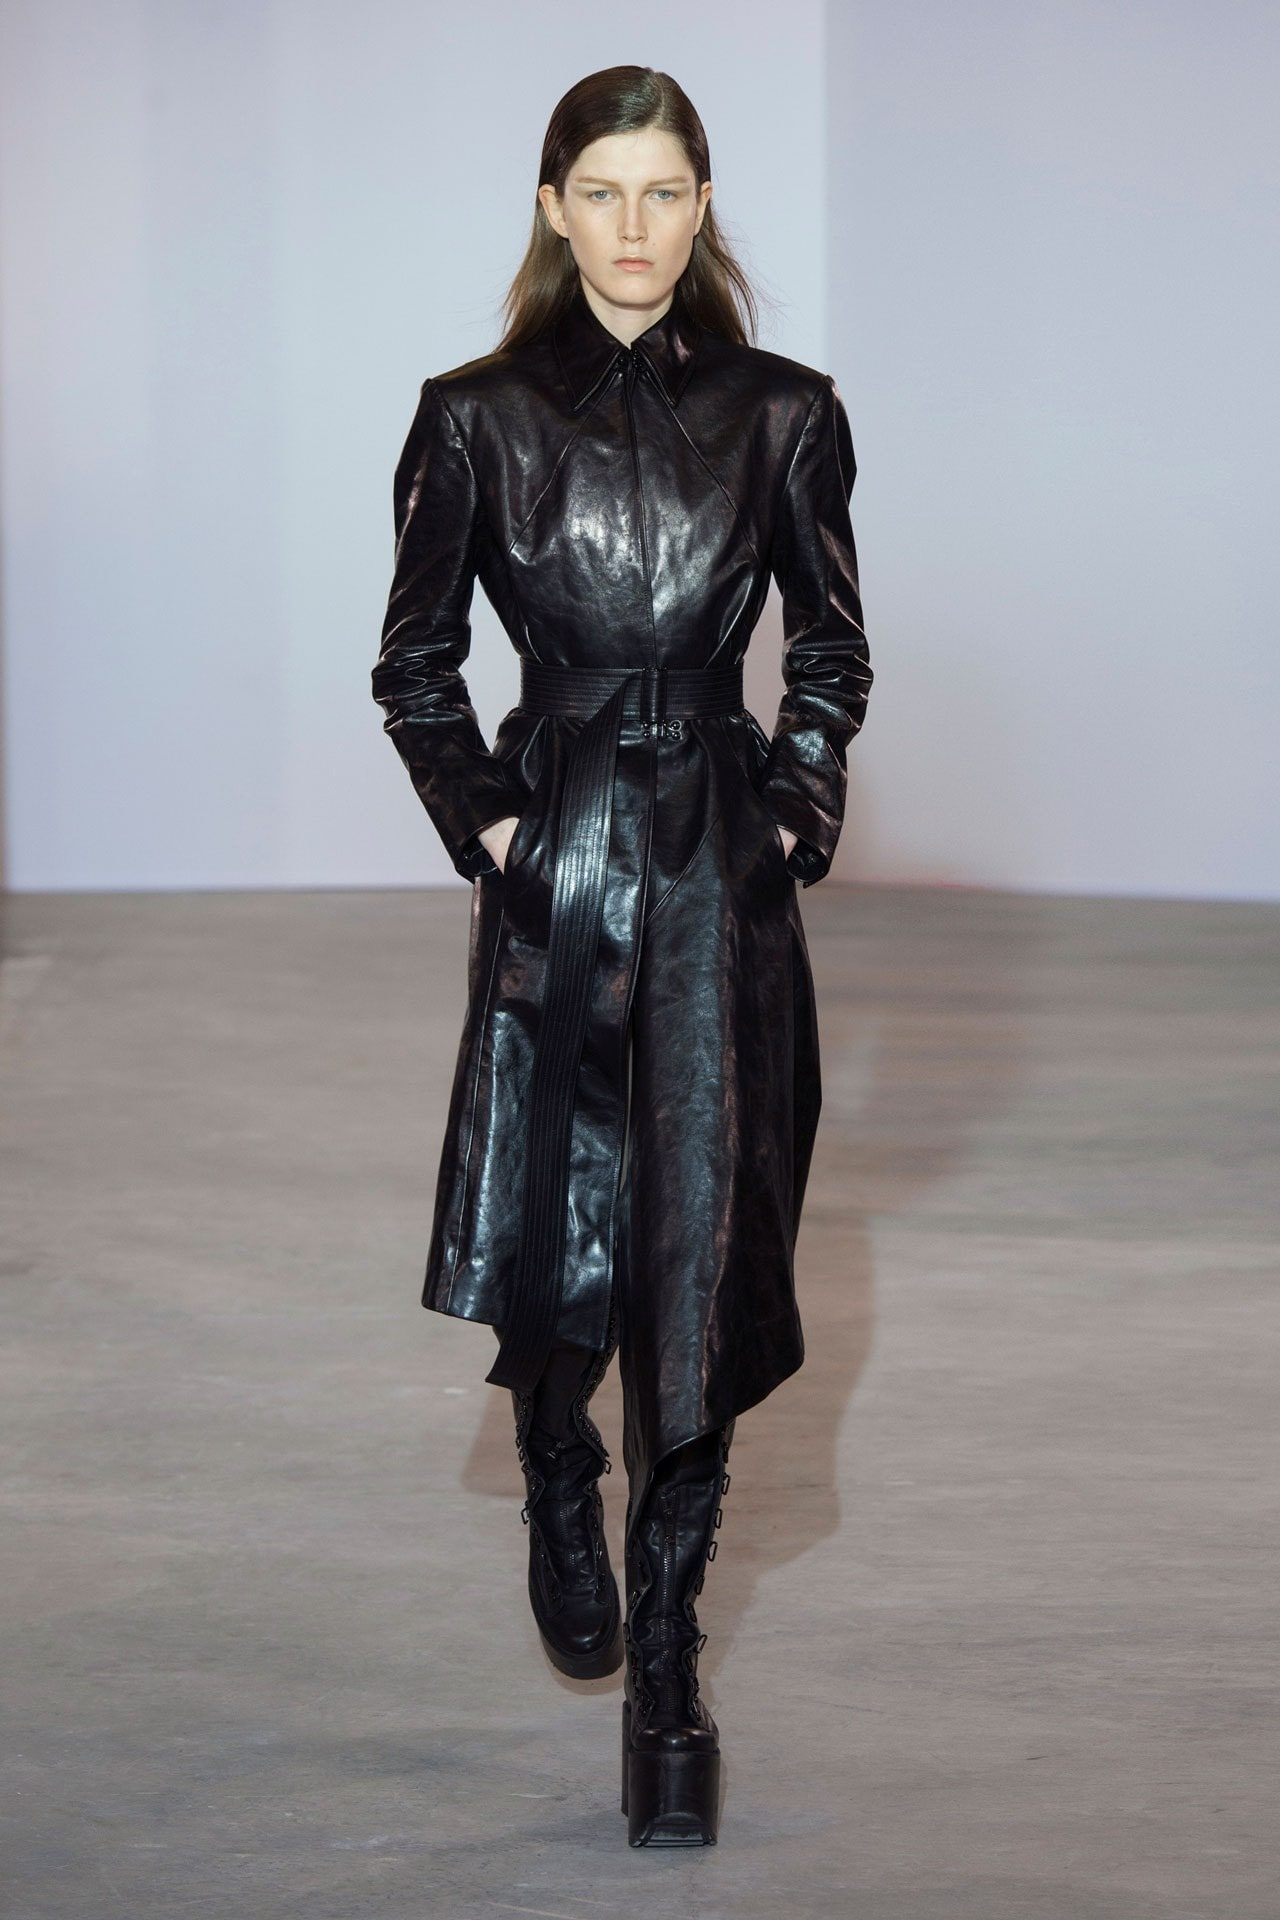 A look from the Olivier Theyskens ready-to-wear autumn/winter '18/'19 collection. Image credit: Indigital